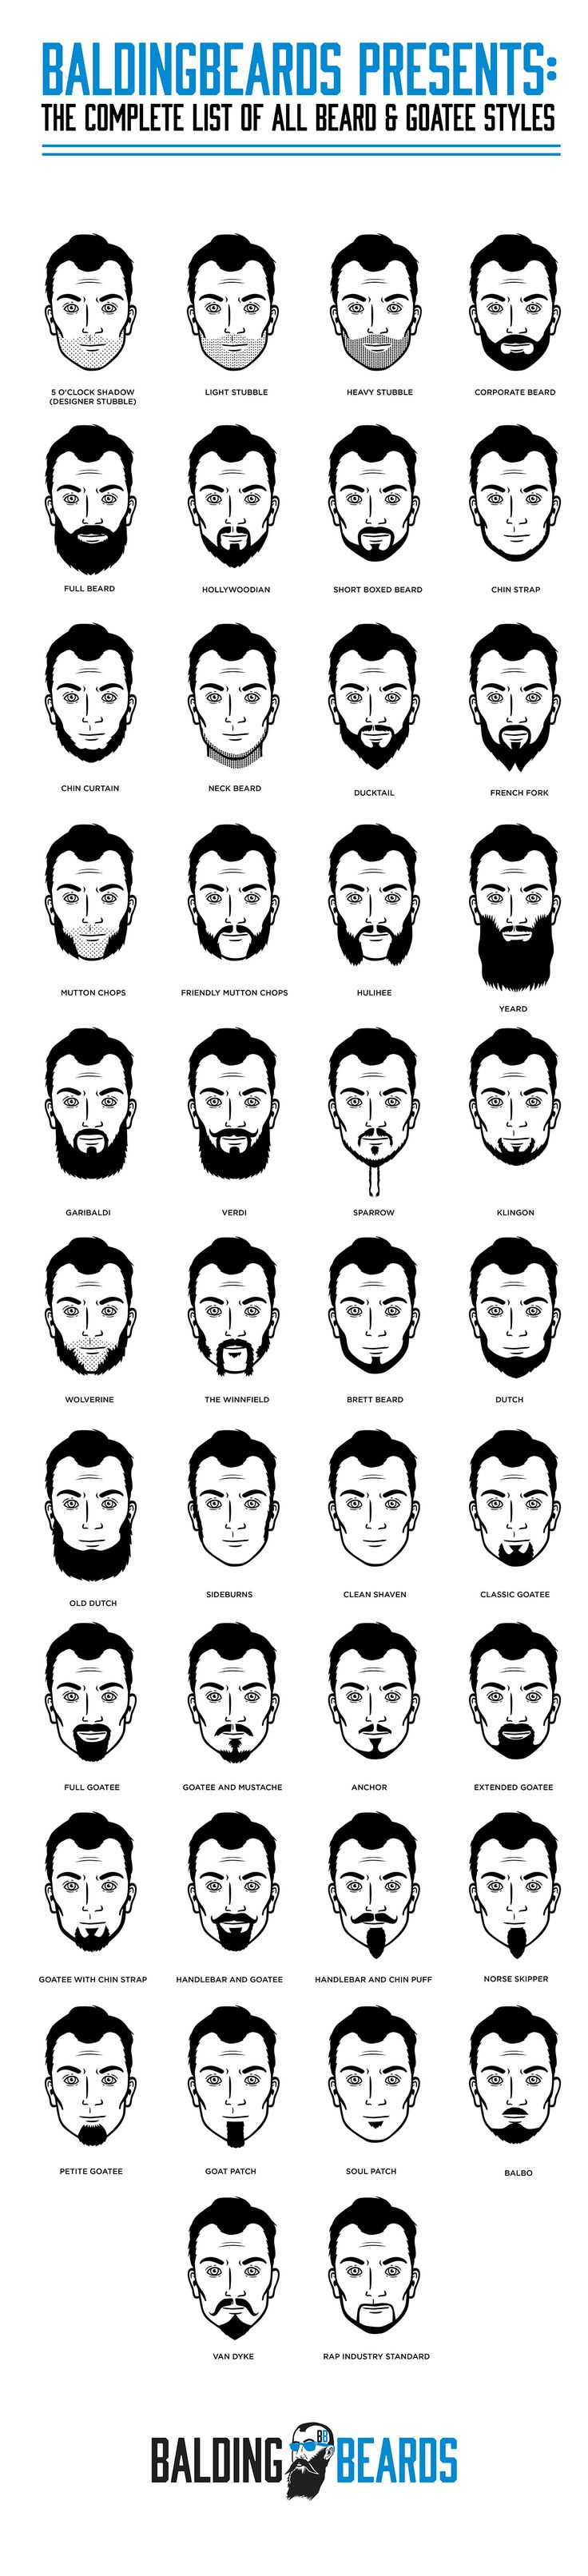 The complete list of all beard (and goatee) styles.